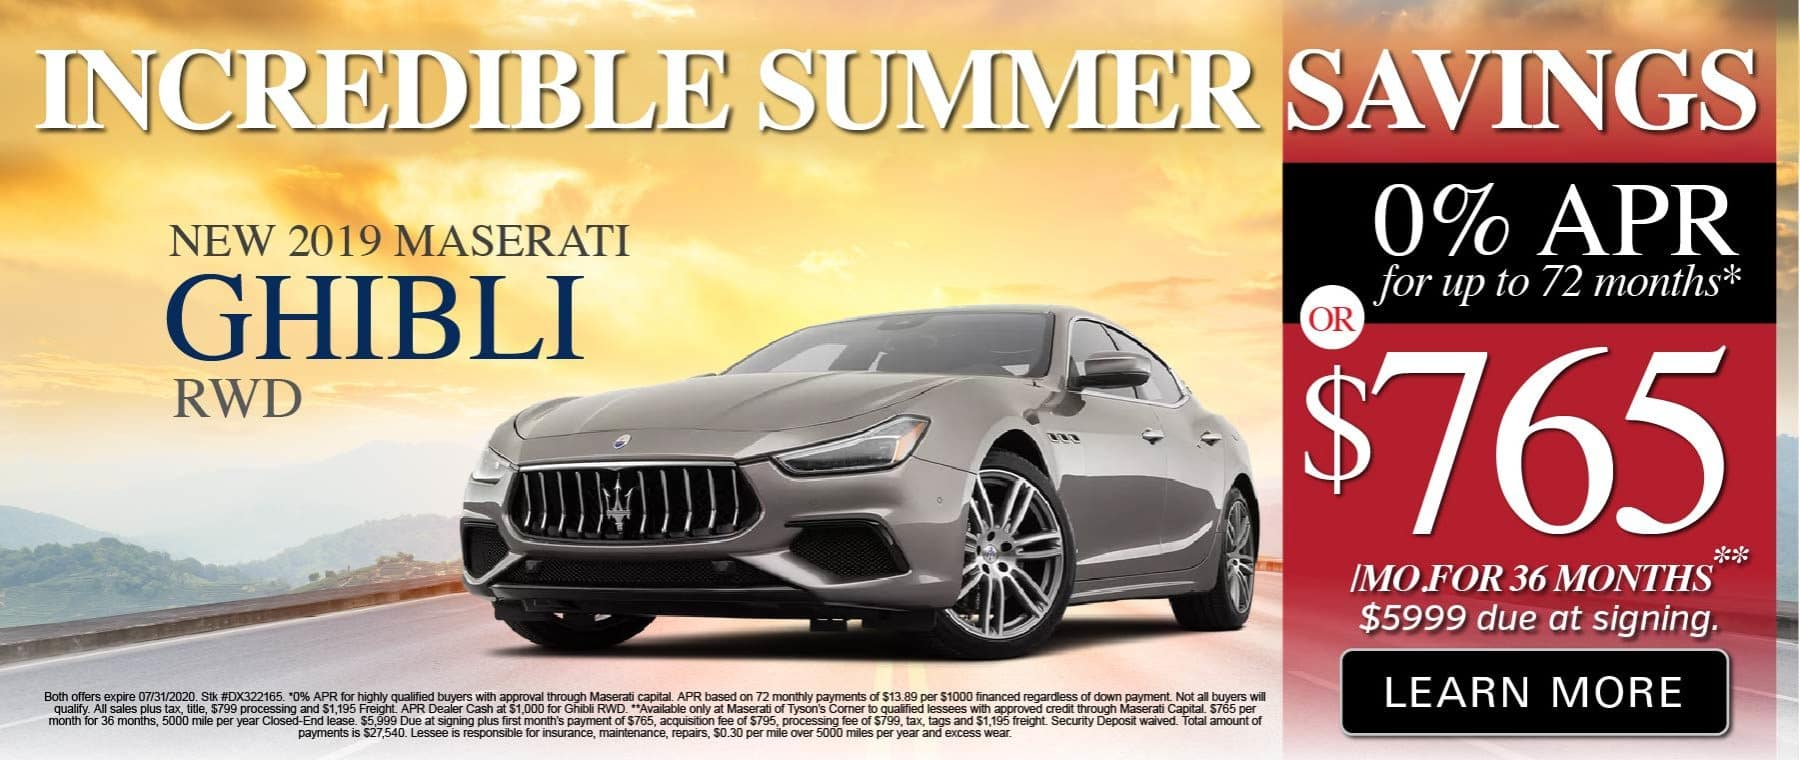 Incredible Summer Savings. 2019 Maserati Ghibli RWD. O% APR for 72 months or $765 a month for 36 months. Learn More.